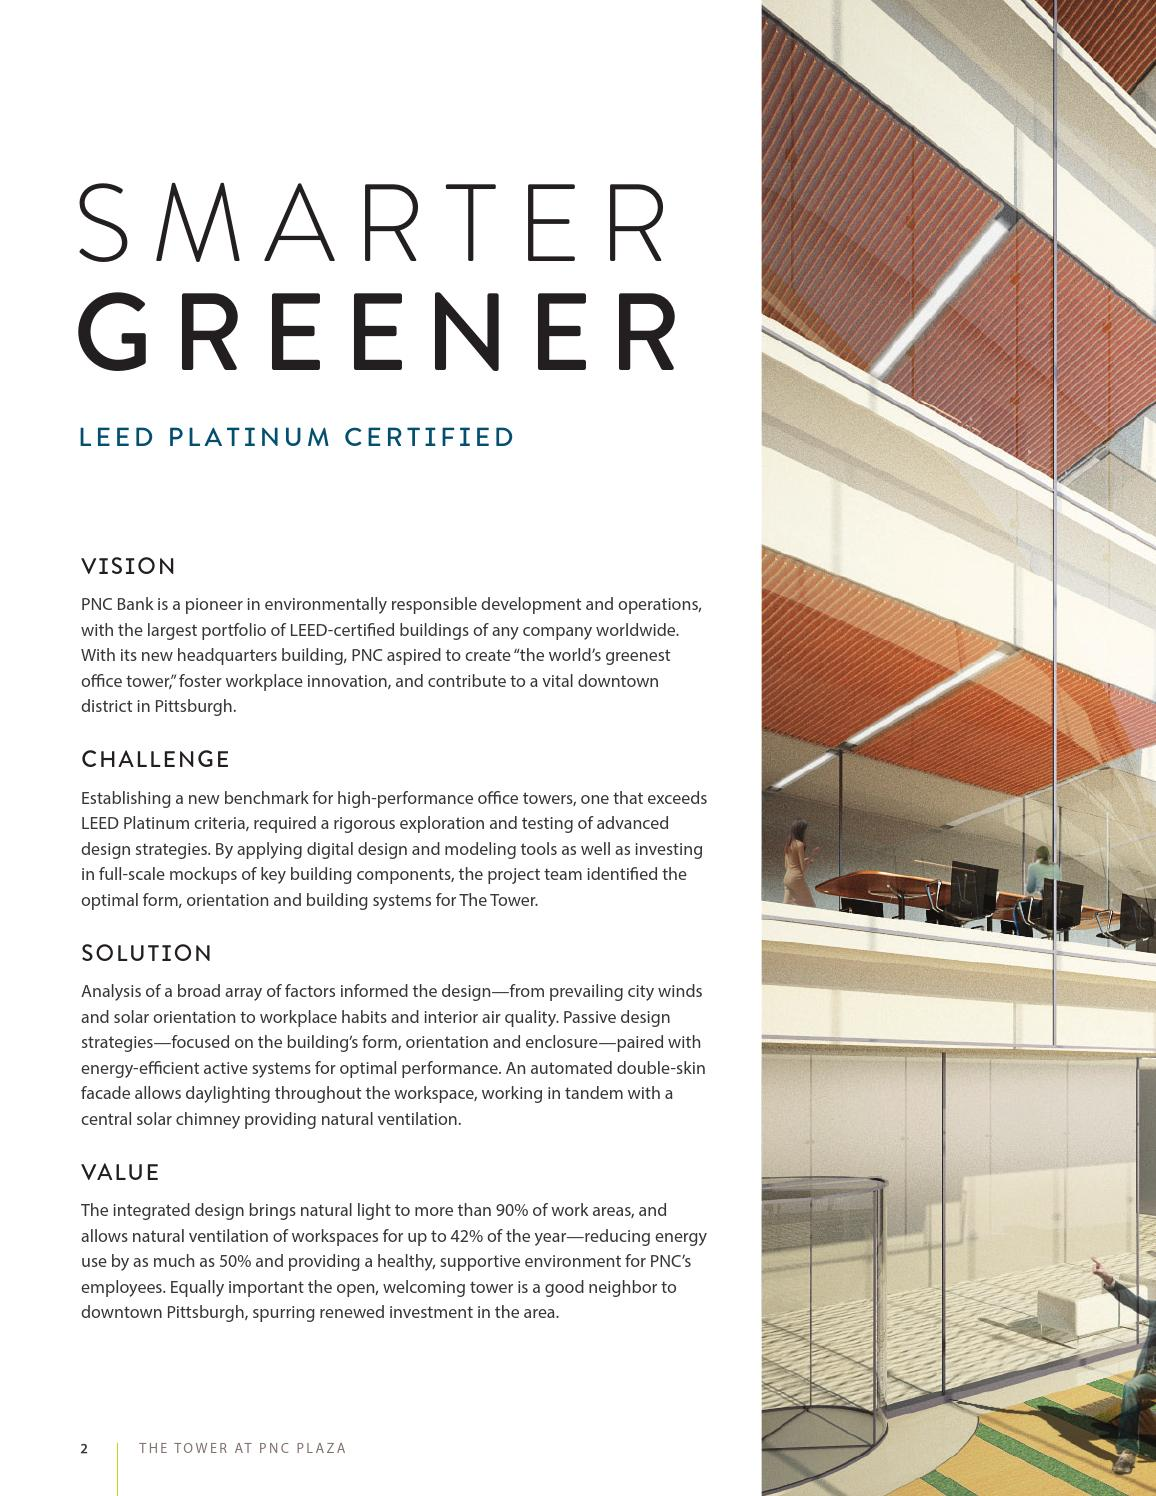 BuroHappold Engineering The Tower at PNC Plaza case study by